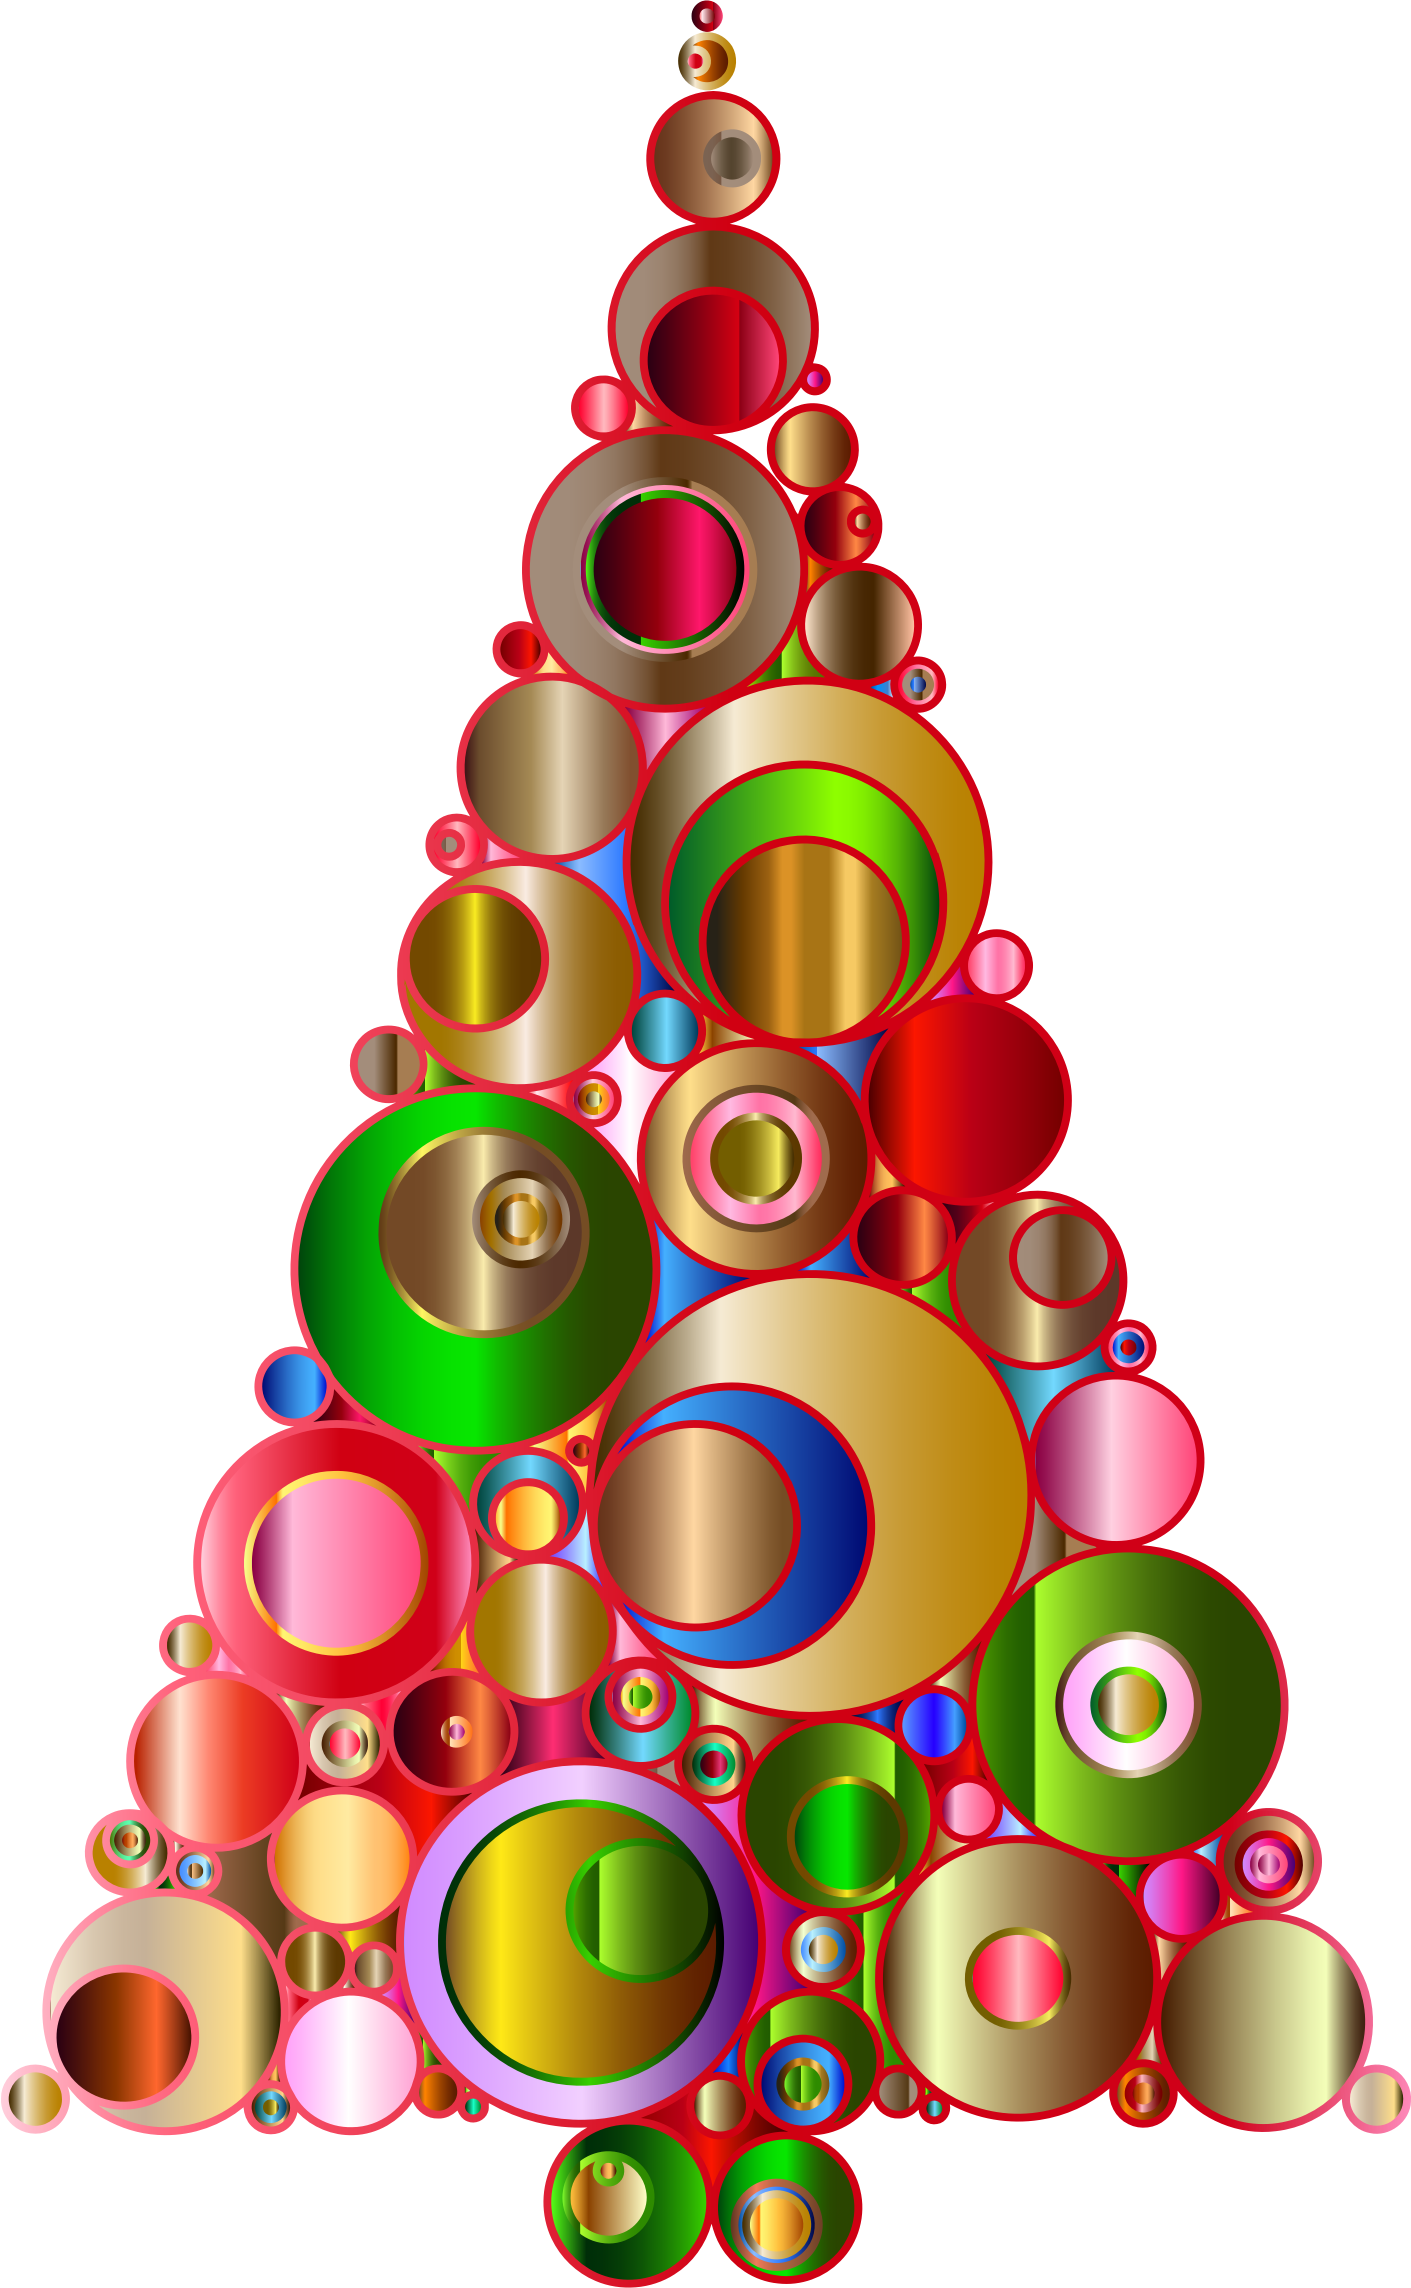 Colorful Abstract Circles Christmas Tree 2 by GDJ